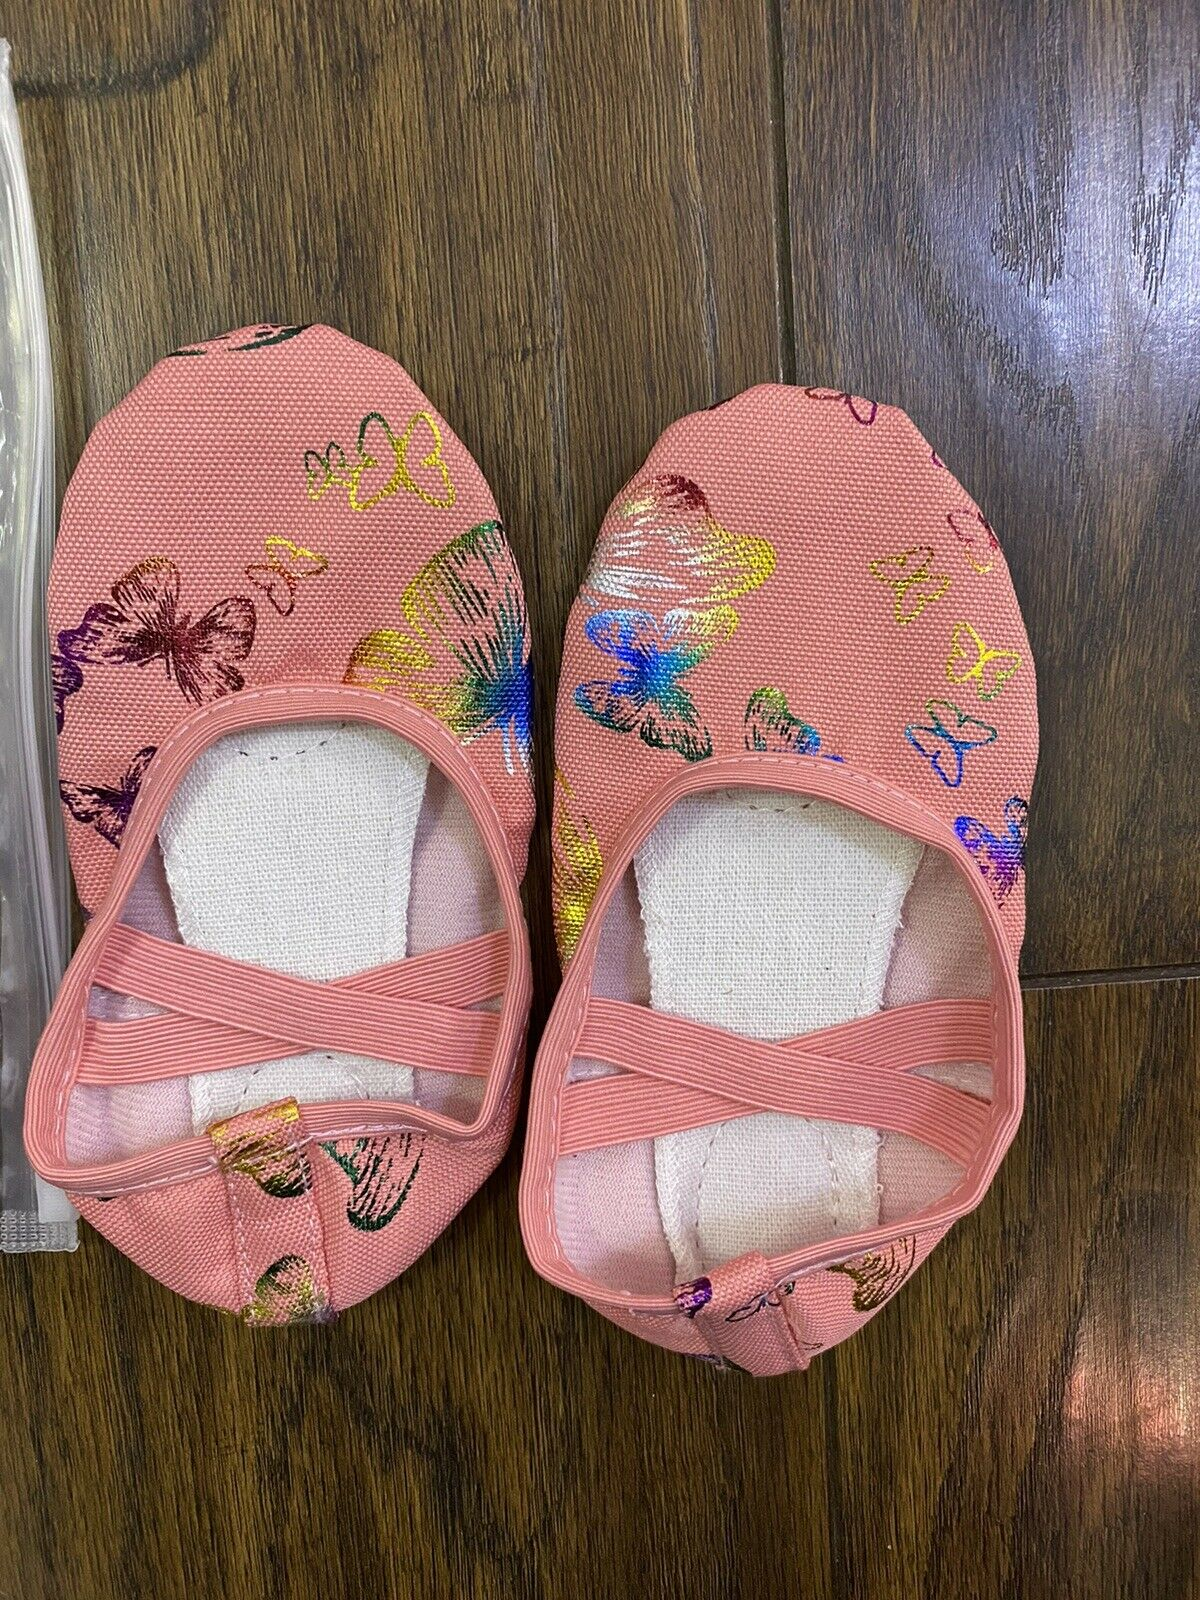 Kids Soft Sole Ballet Dance Shoes Butterfly Feet Length about 15.5cm